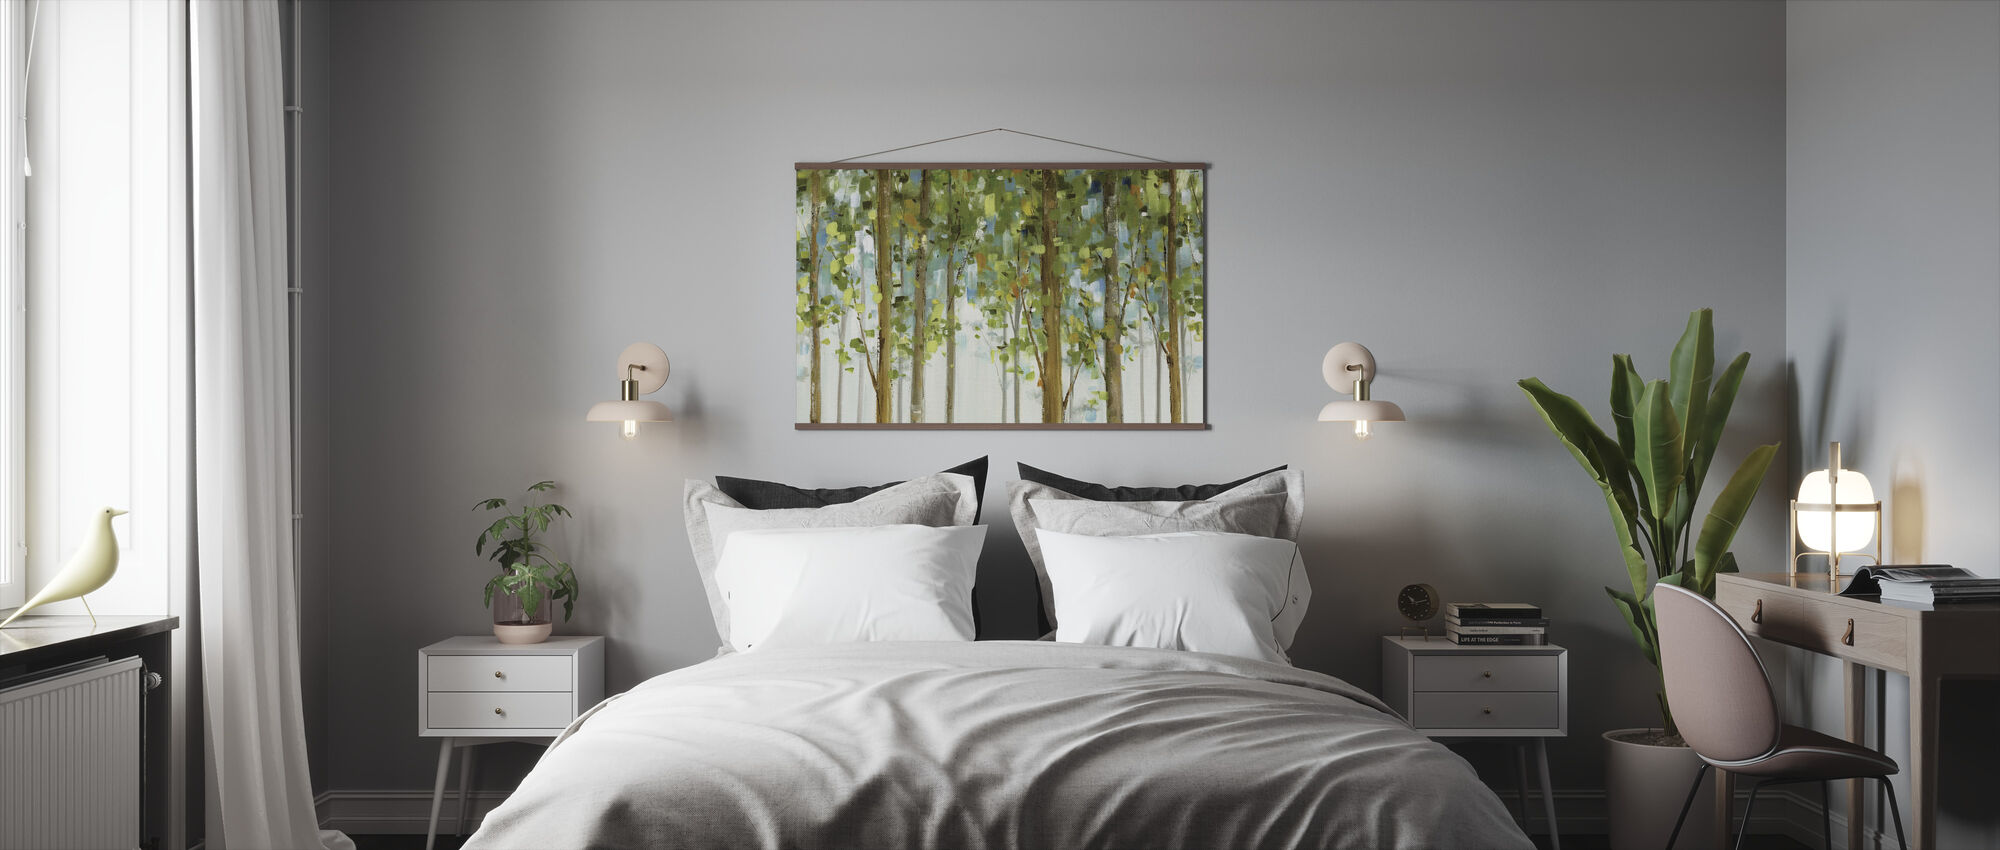 Forest Study - Poster - Bedroom